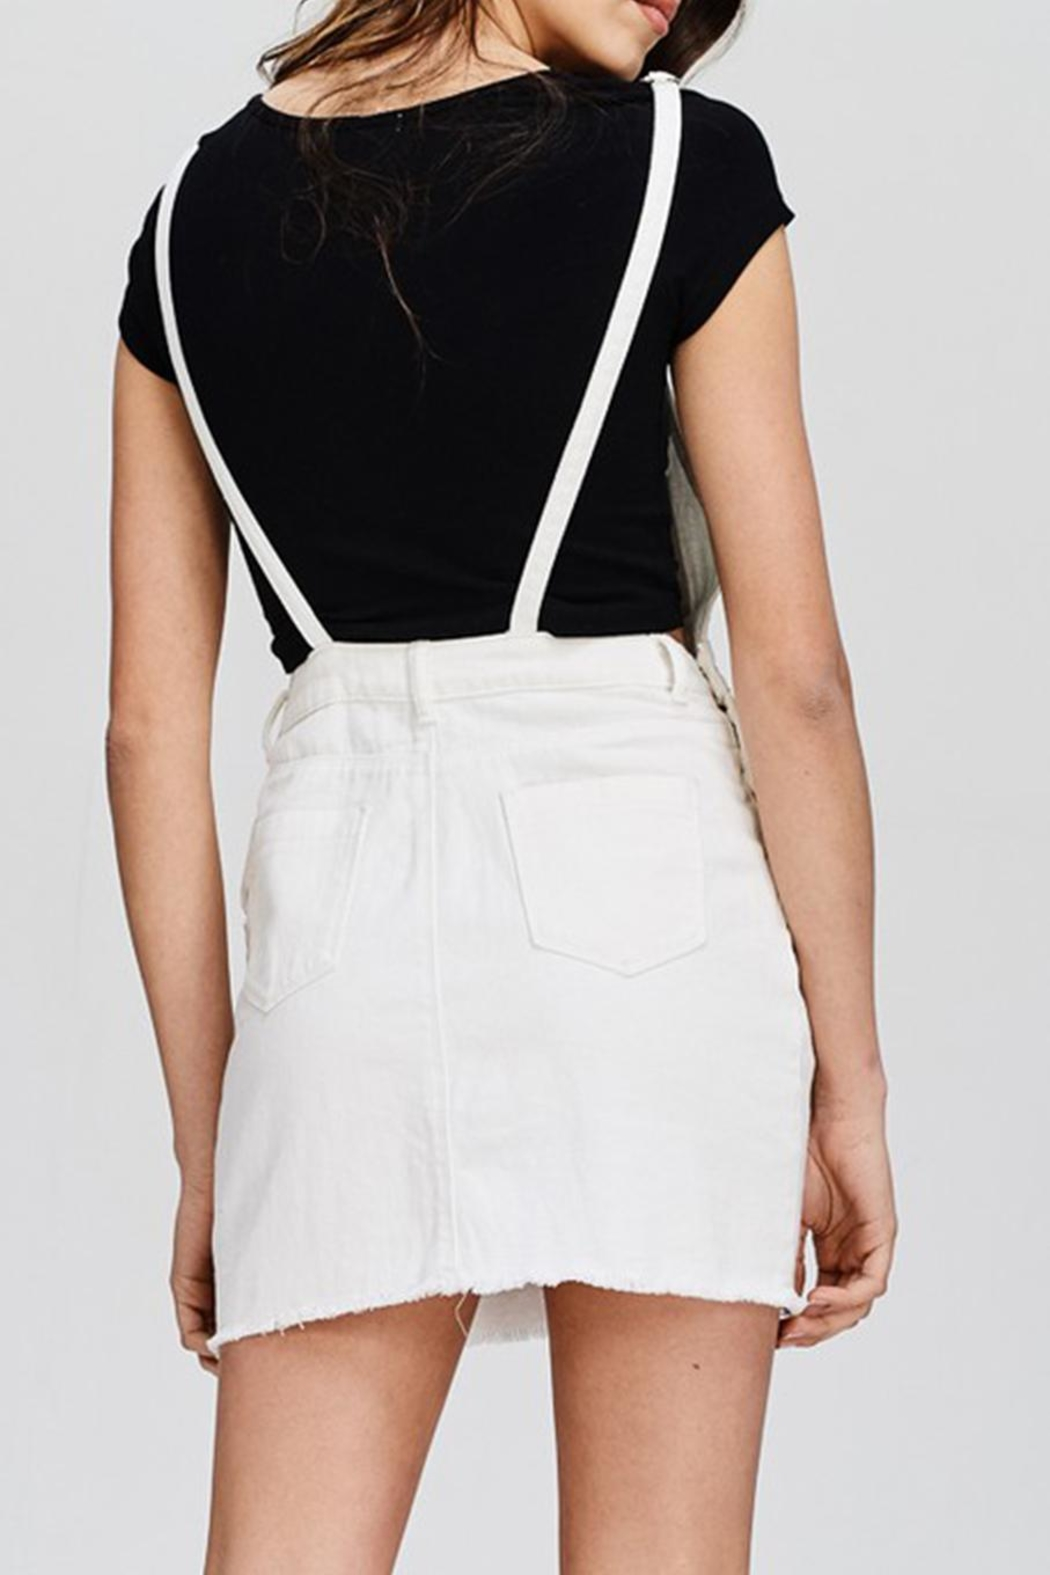 Emory Park White Denim Overall - Side Cropped Image